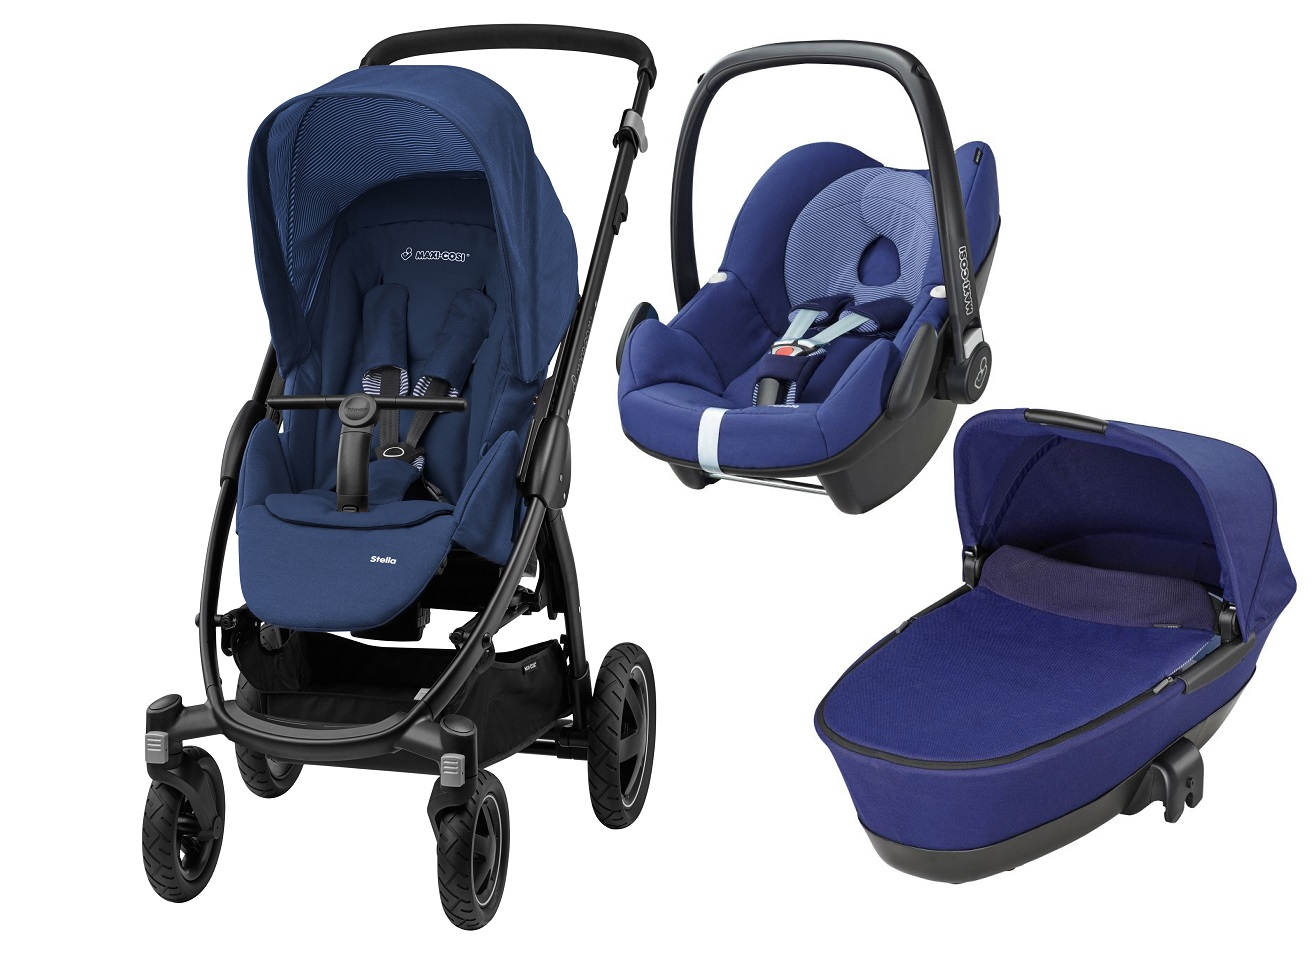 maxi cosi stella incl carrycot and infant car seat pebble 2016 river blue buy at kidsroom. Black Bedroom Furniture Sets. Home Design Ideas